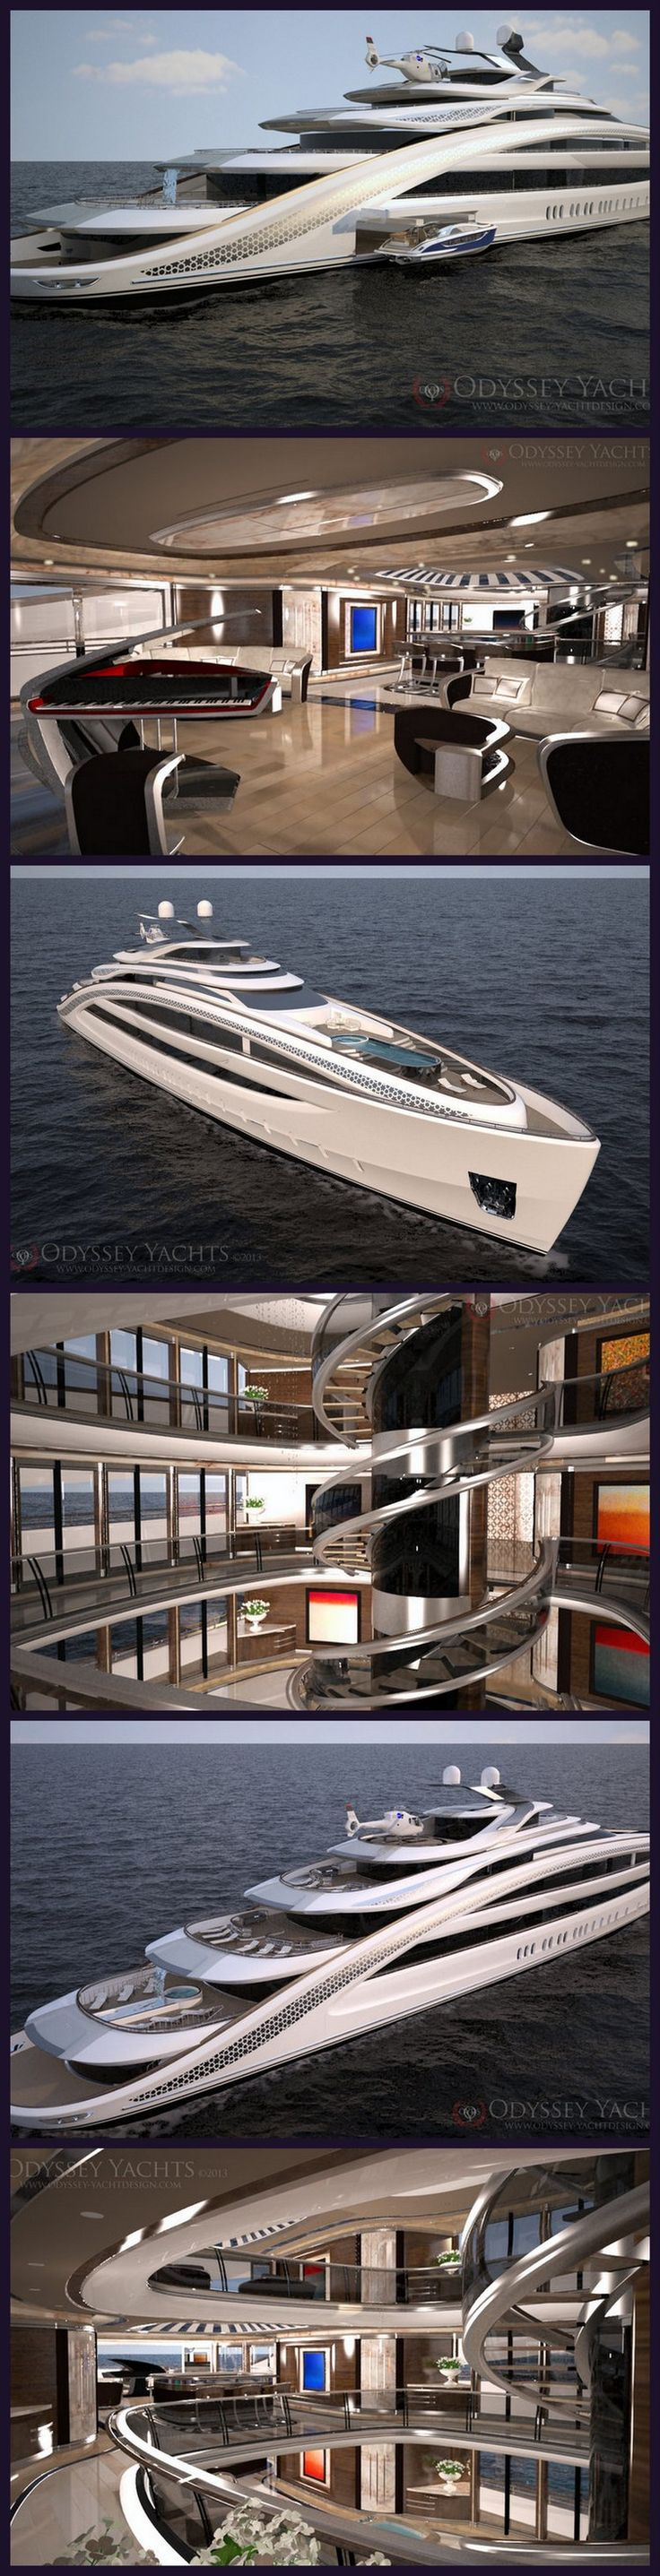 Odyssey Yachts Release Motor Yacht 'Nautilus' Project - Style Estate